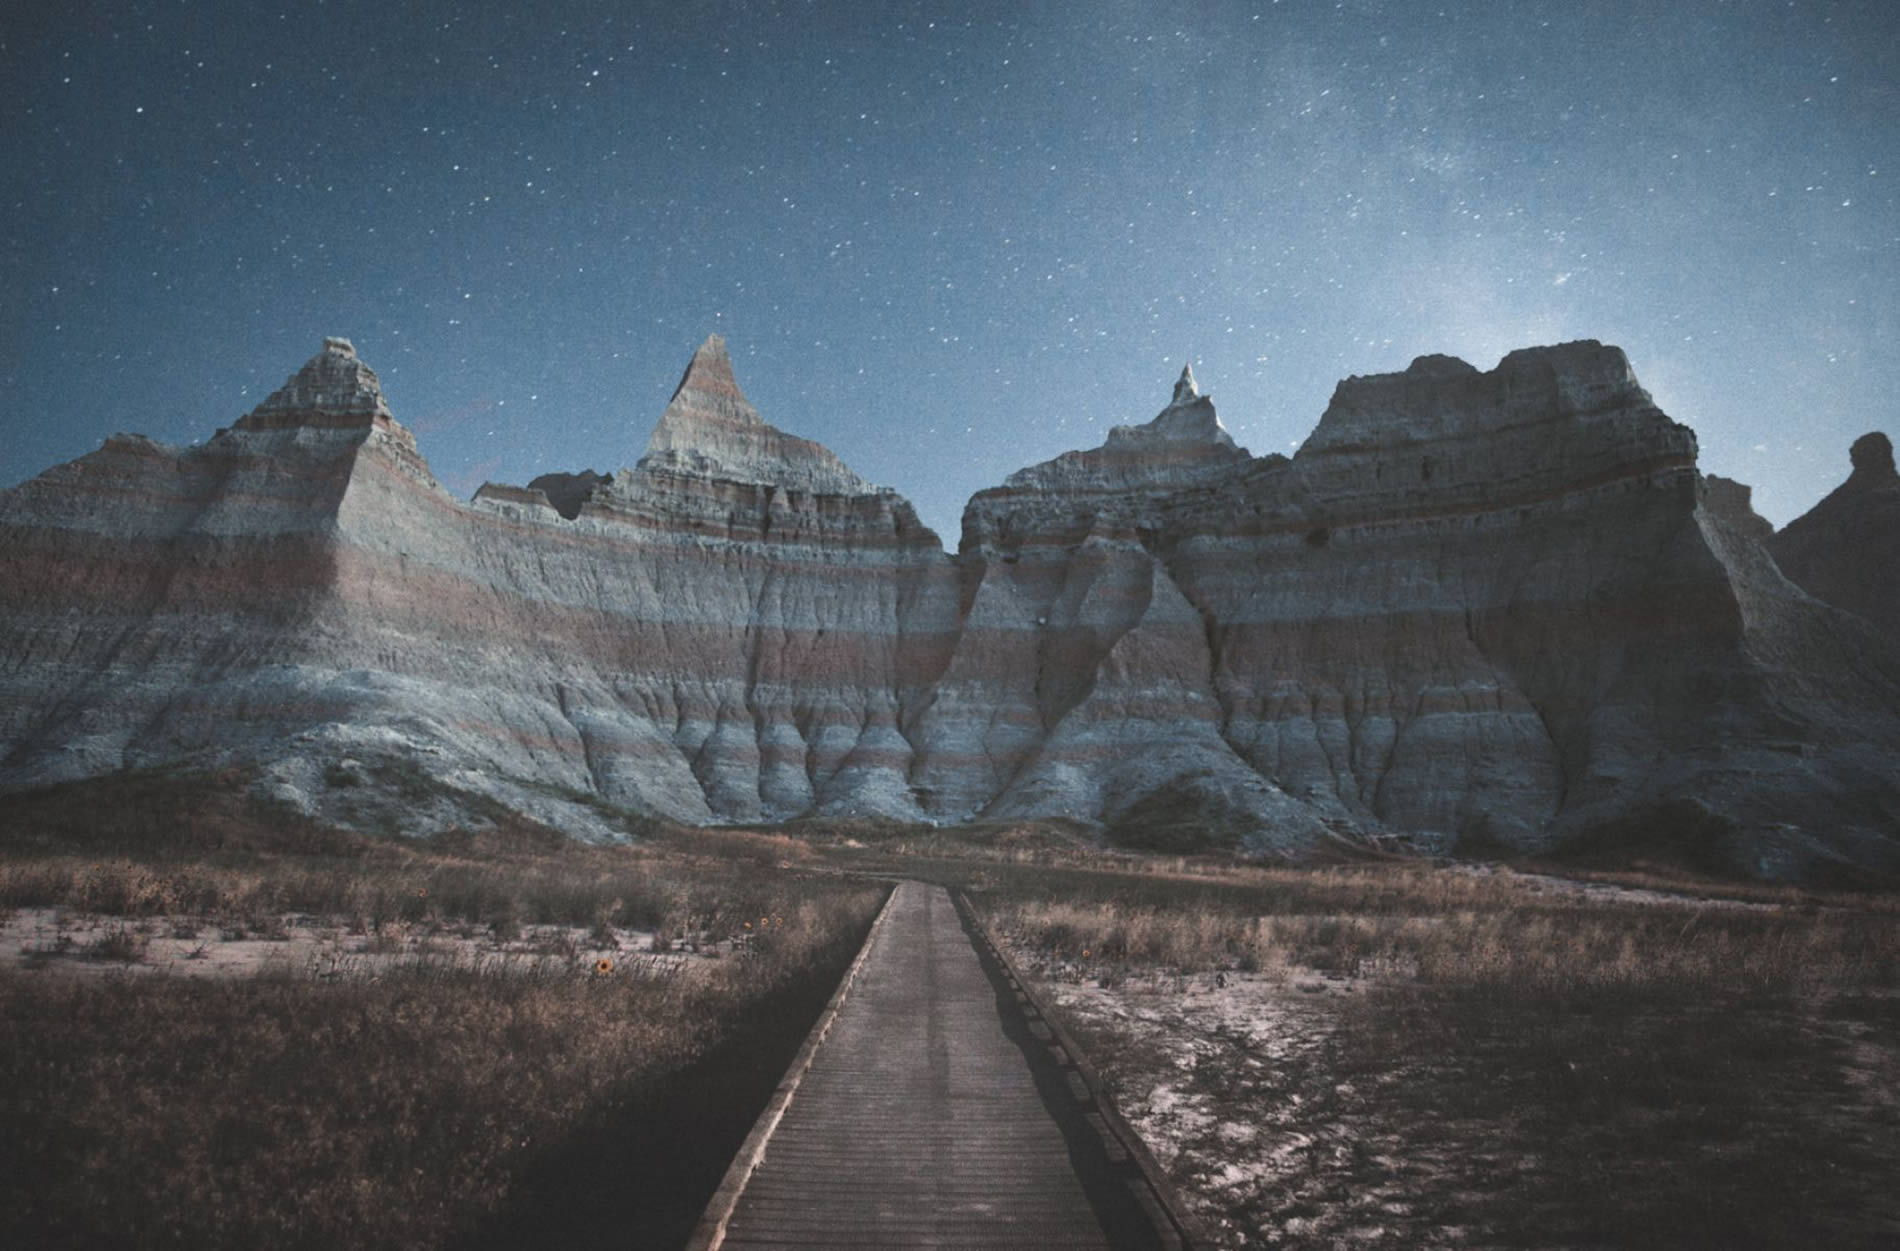 The Road to the Unknown: Photography by Reuben Wu